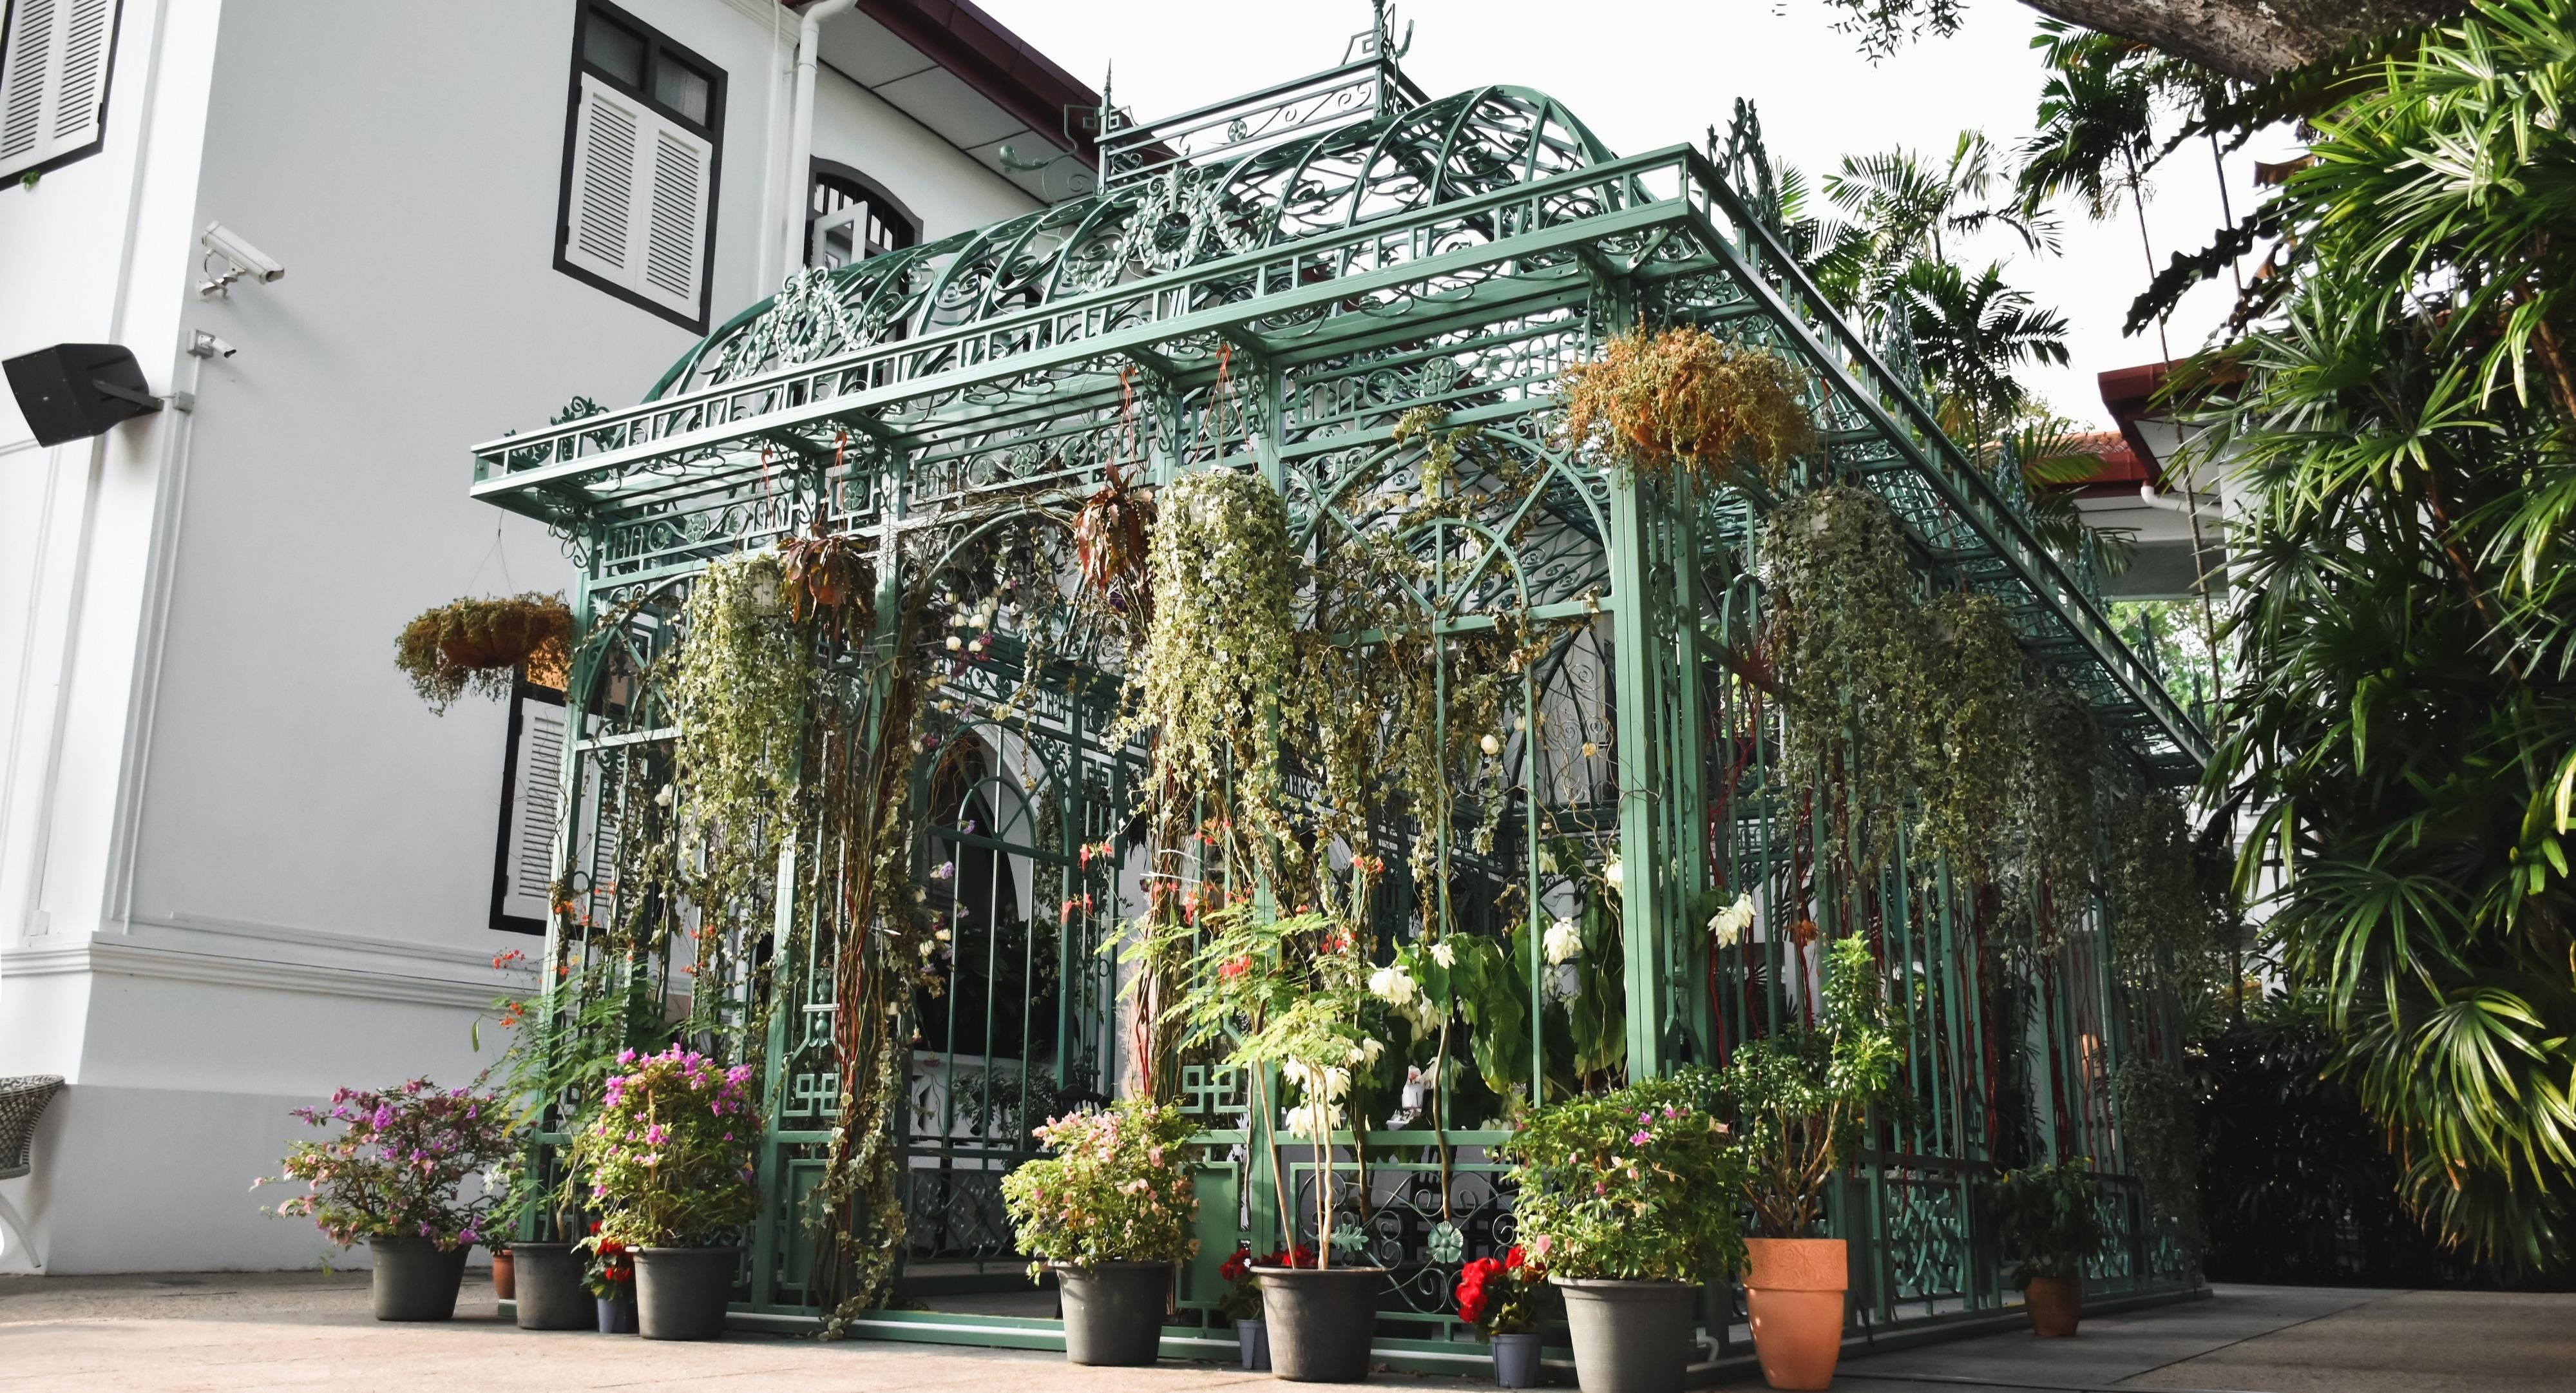 Wildseed Cafe at The Alkaff Mansion Singapore image 1